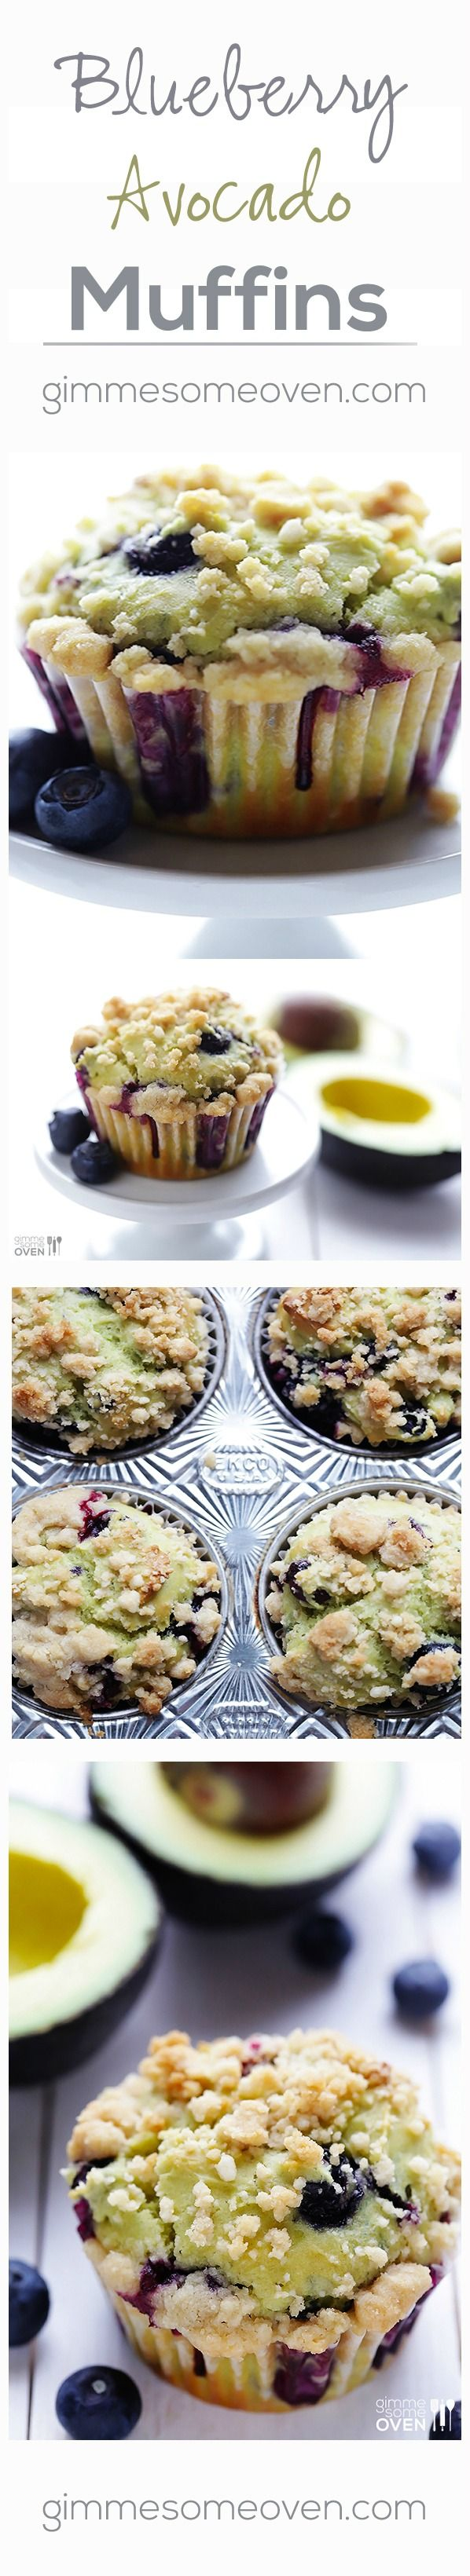 Blueberry Avocado Muffins via gimmesomeoven// #avocado #muffins #blueberry